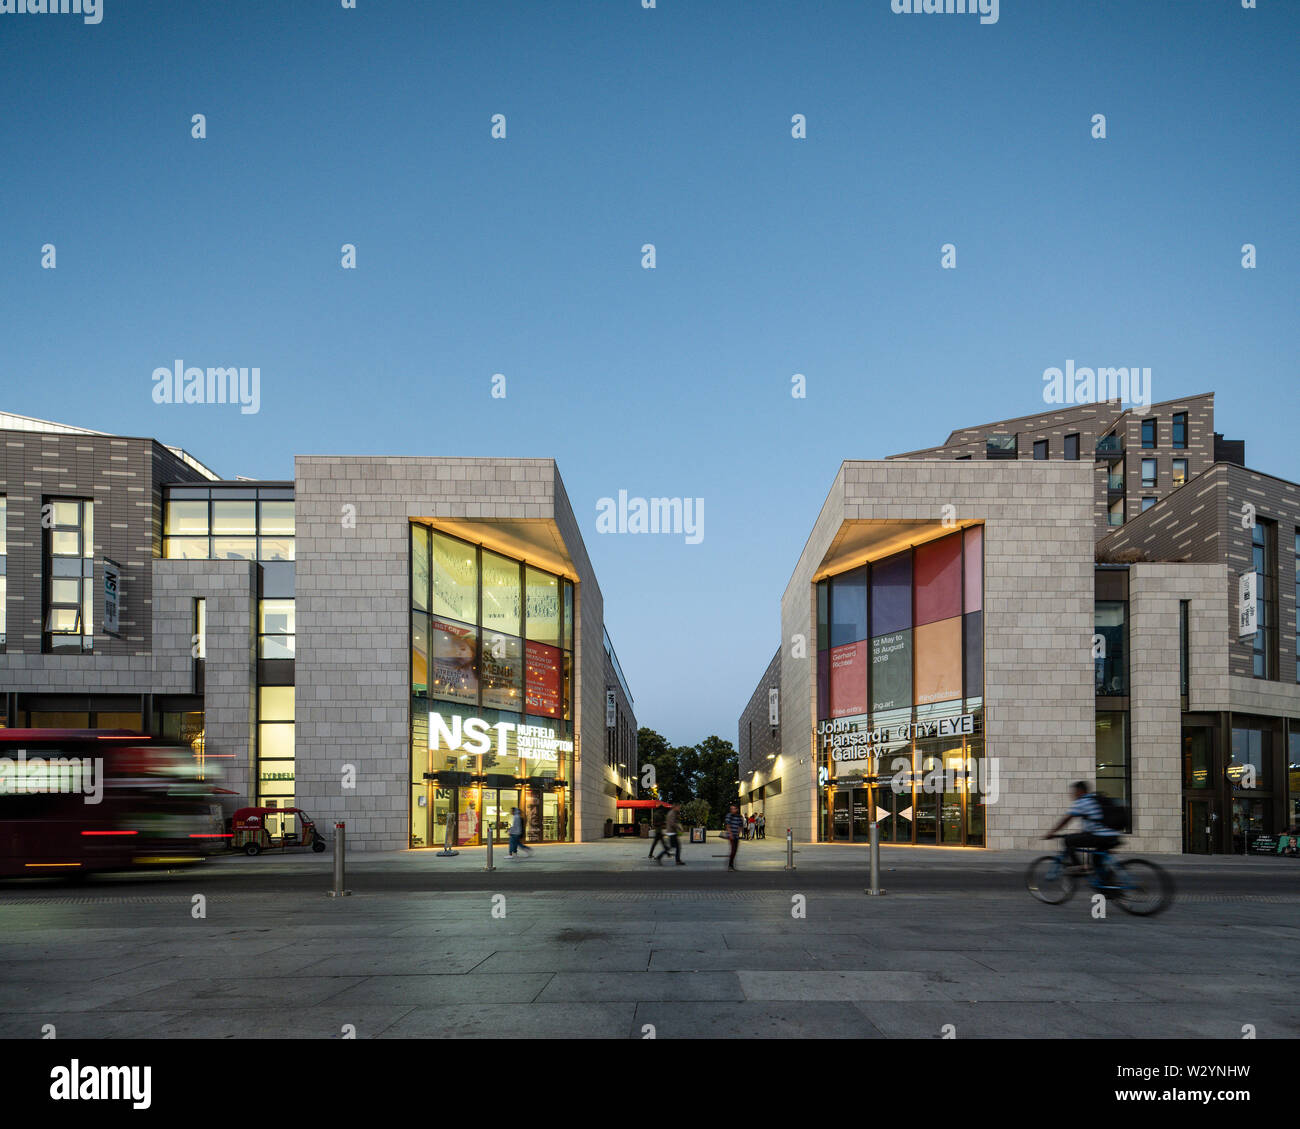 Dusk view across Guildhall Square with pedestrian route 'Guildhall Place'. Studio 144 - Southampton's Art Complex, Southampton, United Kingdom. Archit - Stock Image